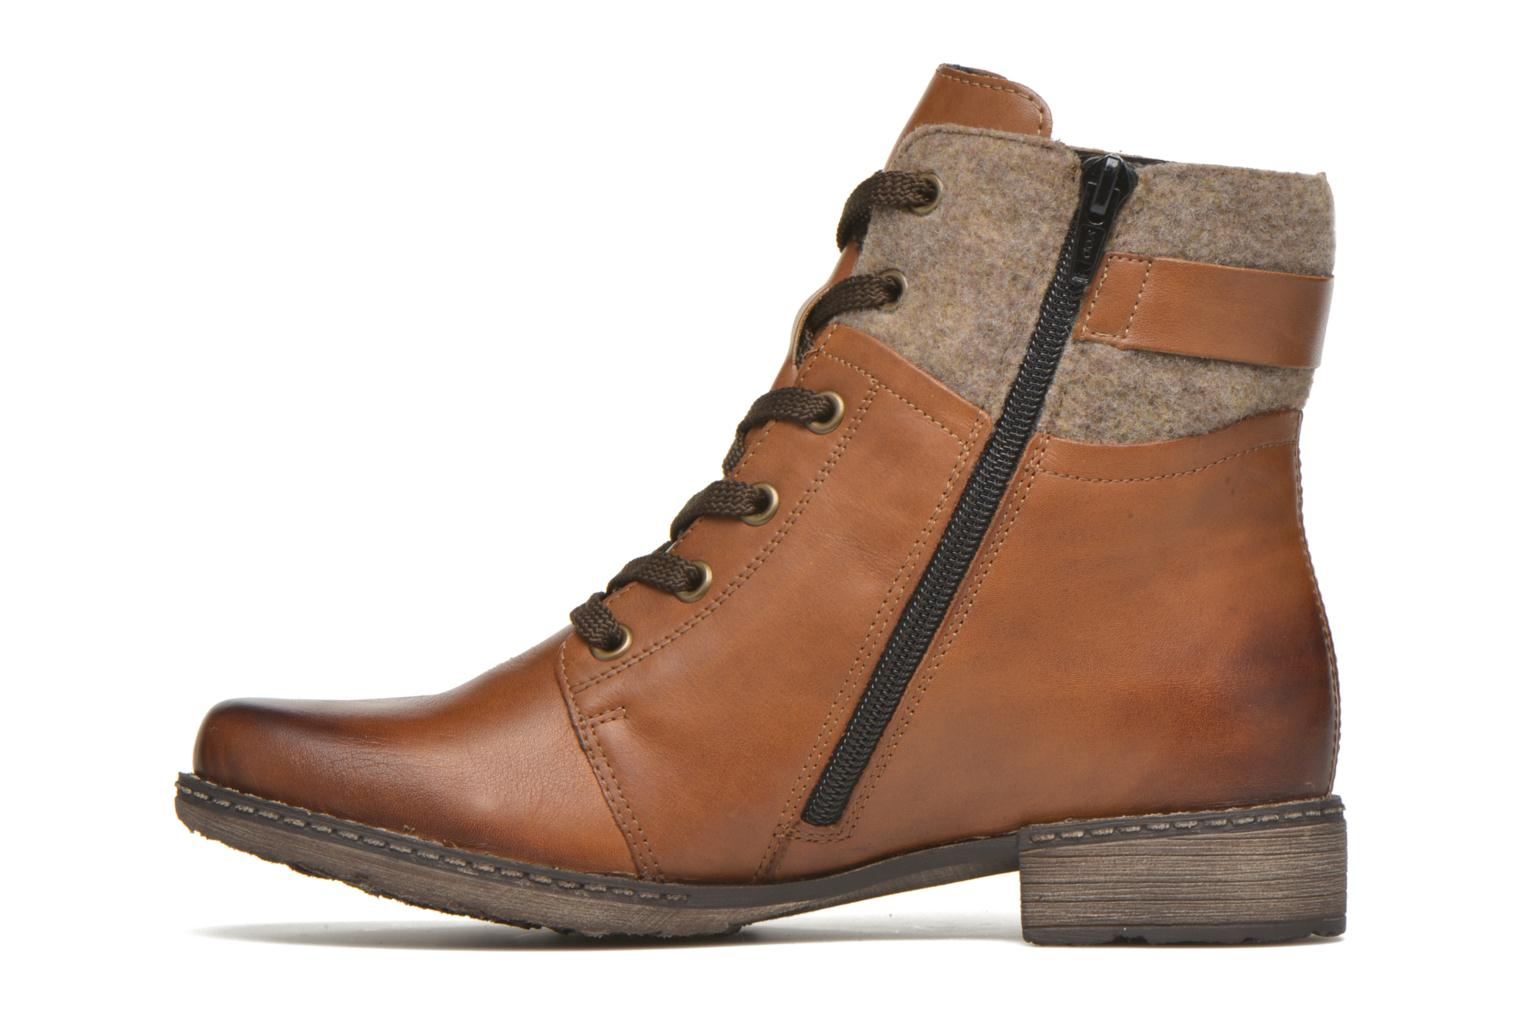 Bottines et boots Remonte Alexandra D4379 Marron vue face